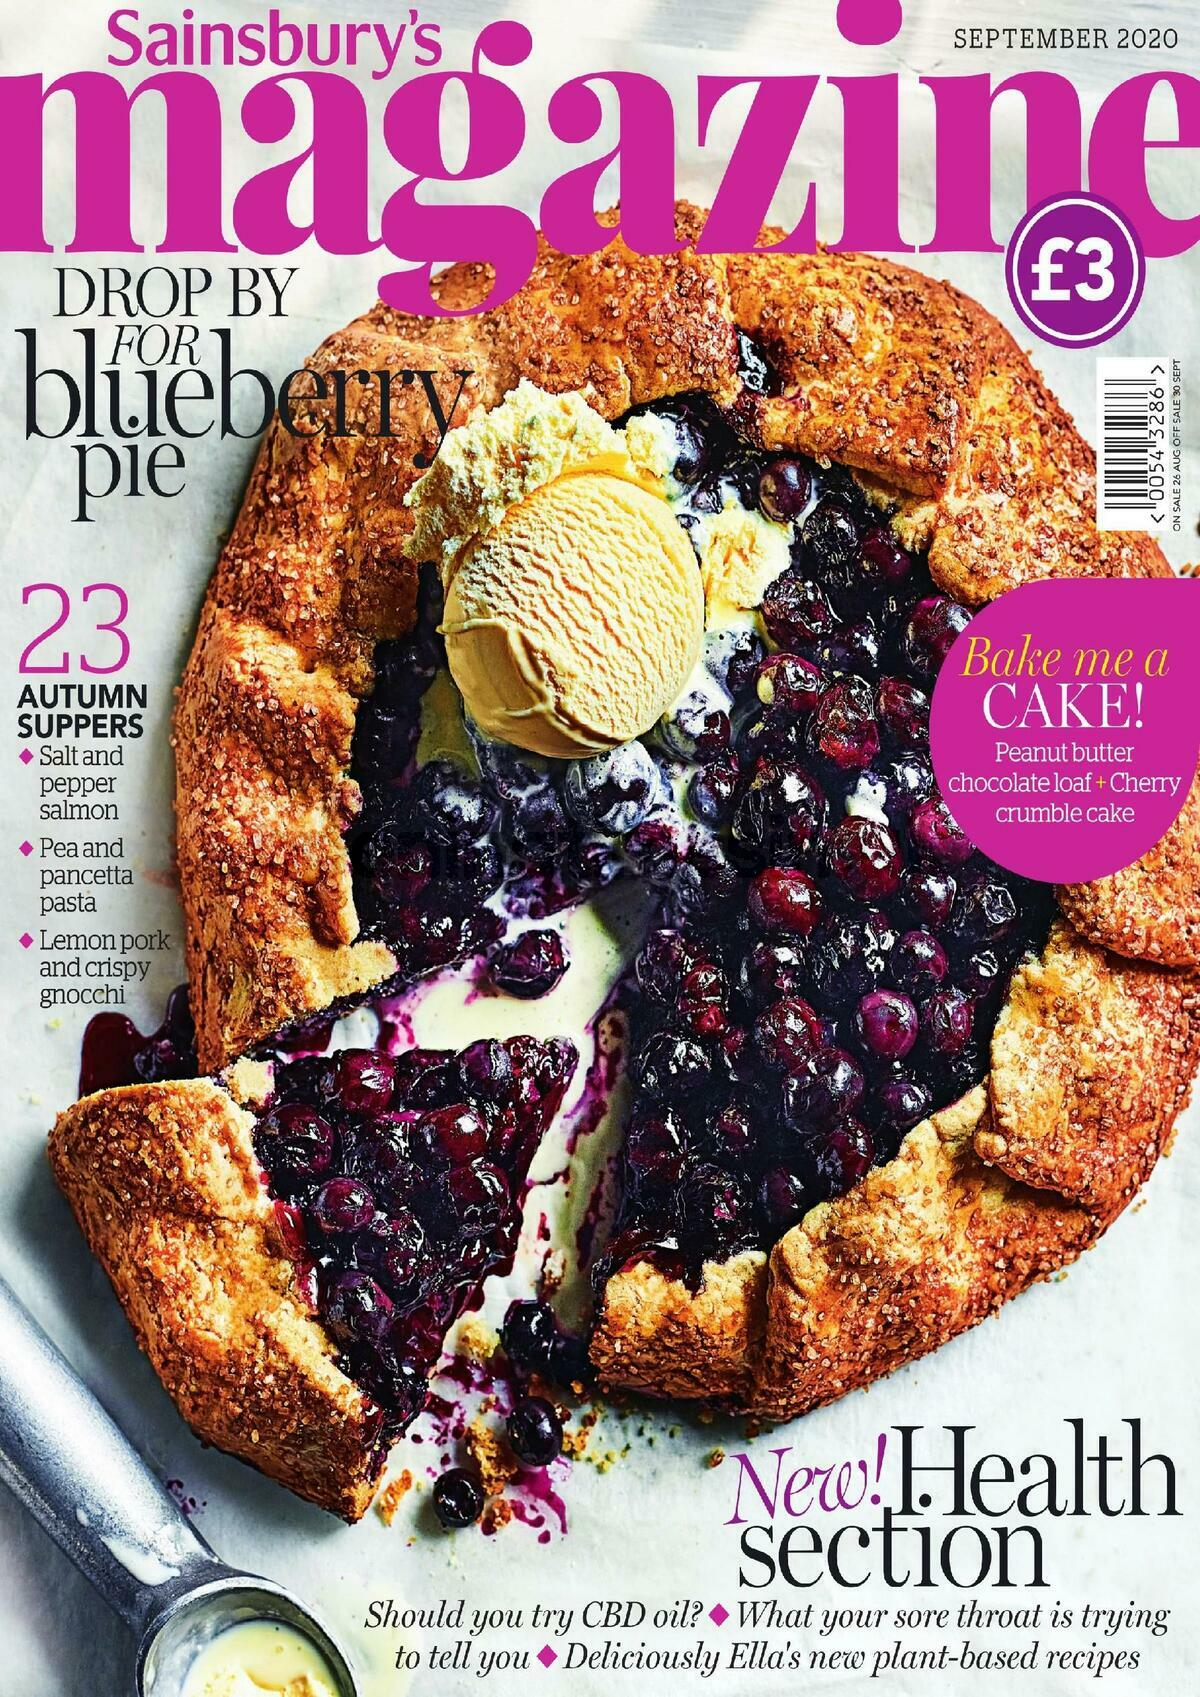 Sainsbury's Magazine September Offers from September 1